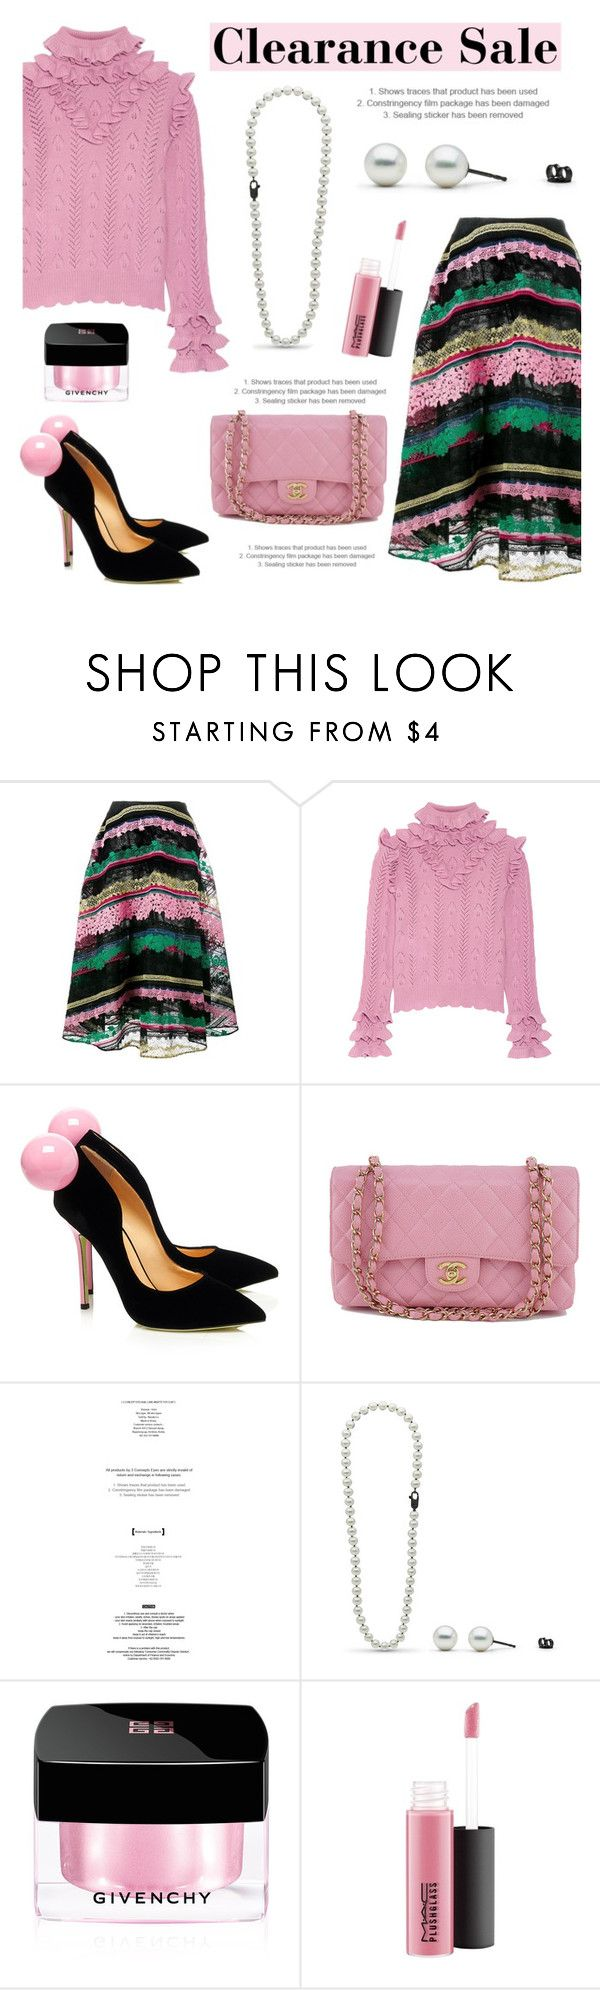 """Clearance sale!"" by pearlparadise ❤ liked on Polyvore featuring Valentino, Gucci, Giannico, Chanel, StyleNanda, Givenchy and MAC Cosmetics"